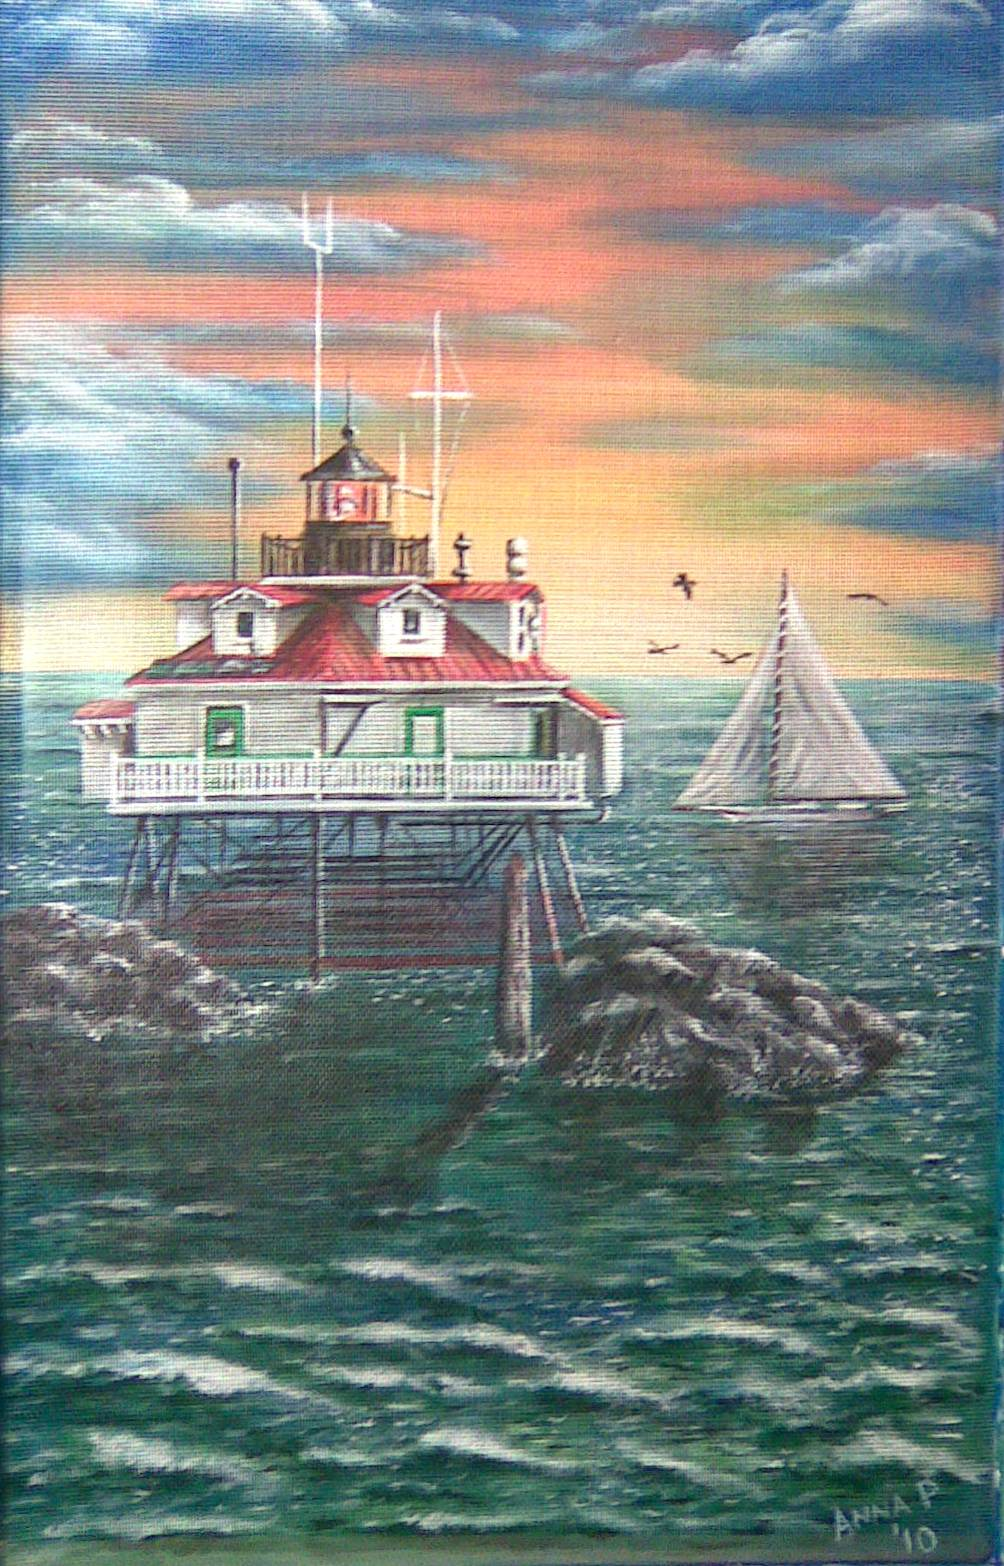 Anna's Painted Screens, Thomas Point lighthouse, sunset, skipjack